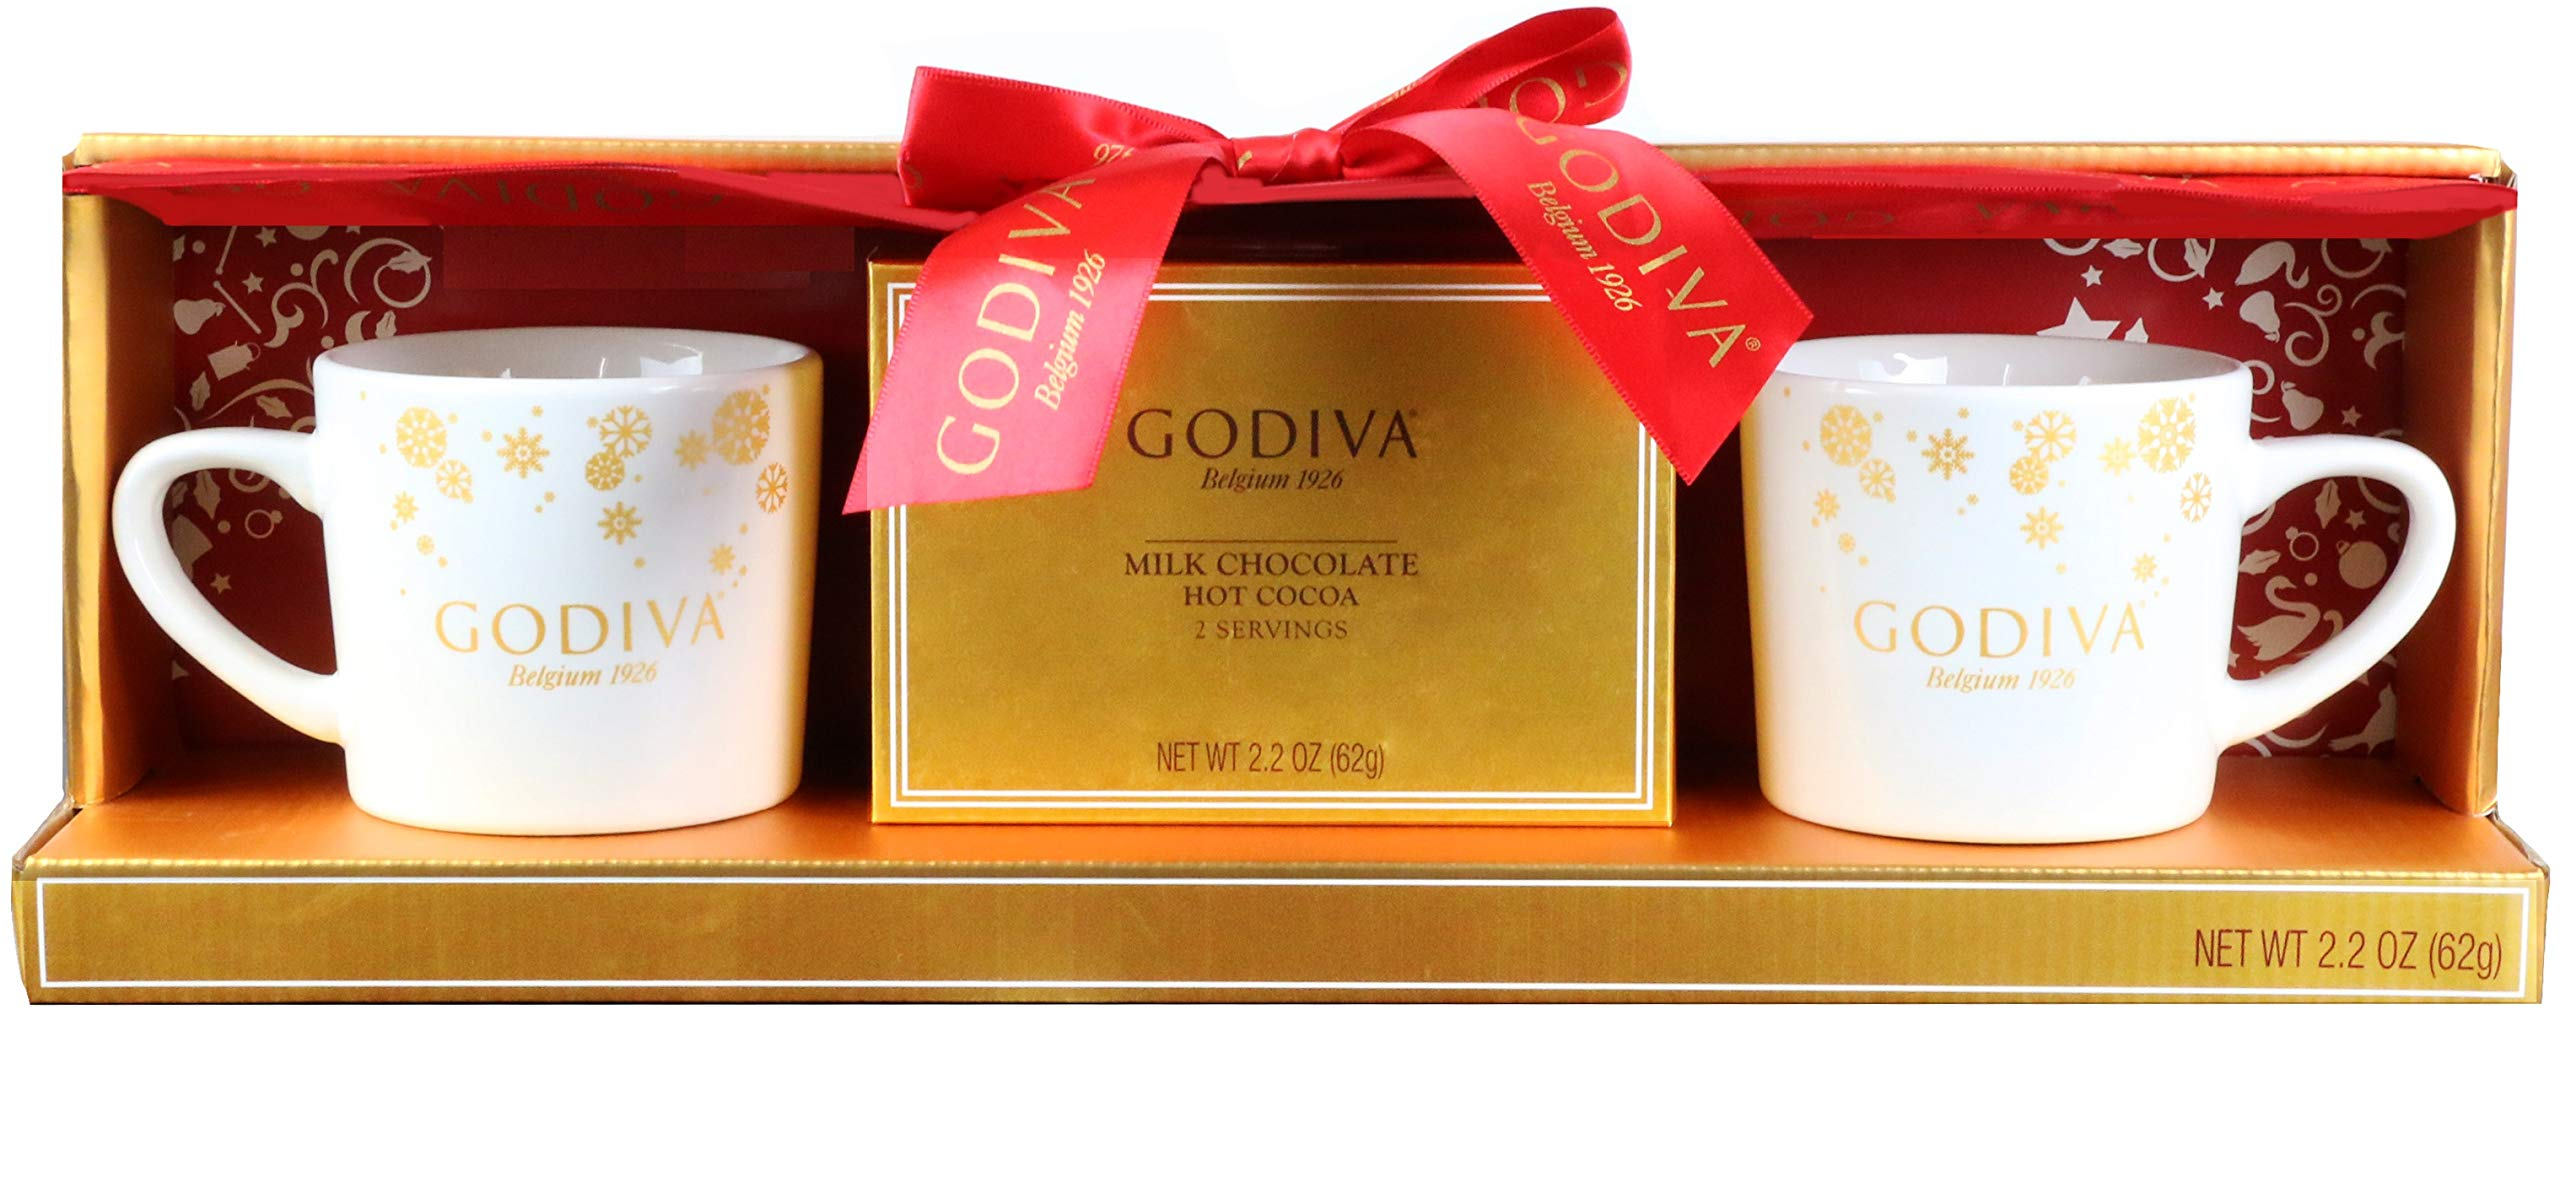 Thoughtfully Gifts, Godiva Cocoa for 2 Gift Set, Includes 2 Mugs and 2 Milk Chocolate Cocoa Mixes by Modern Gourmet Food